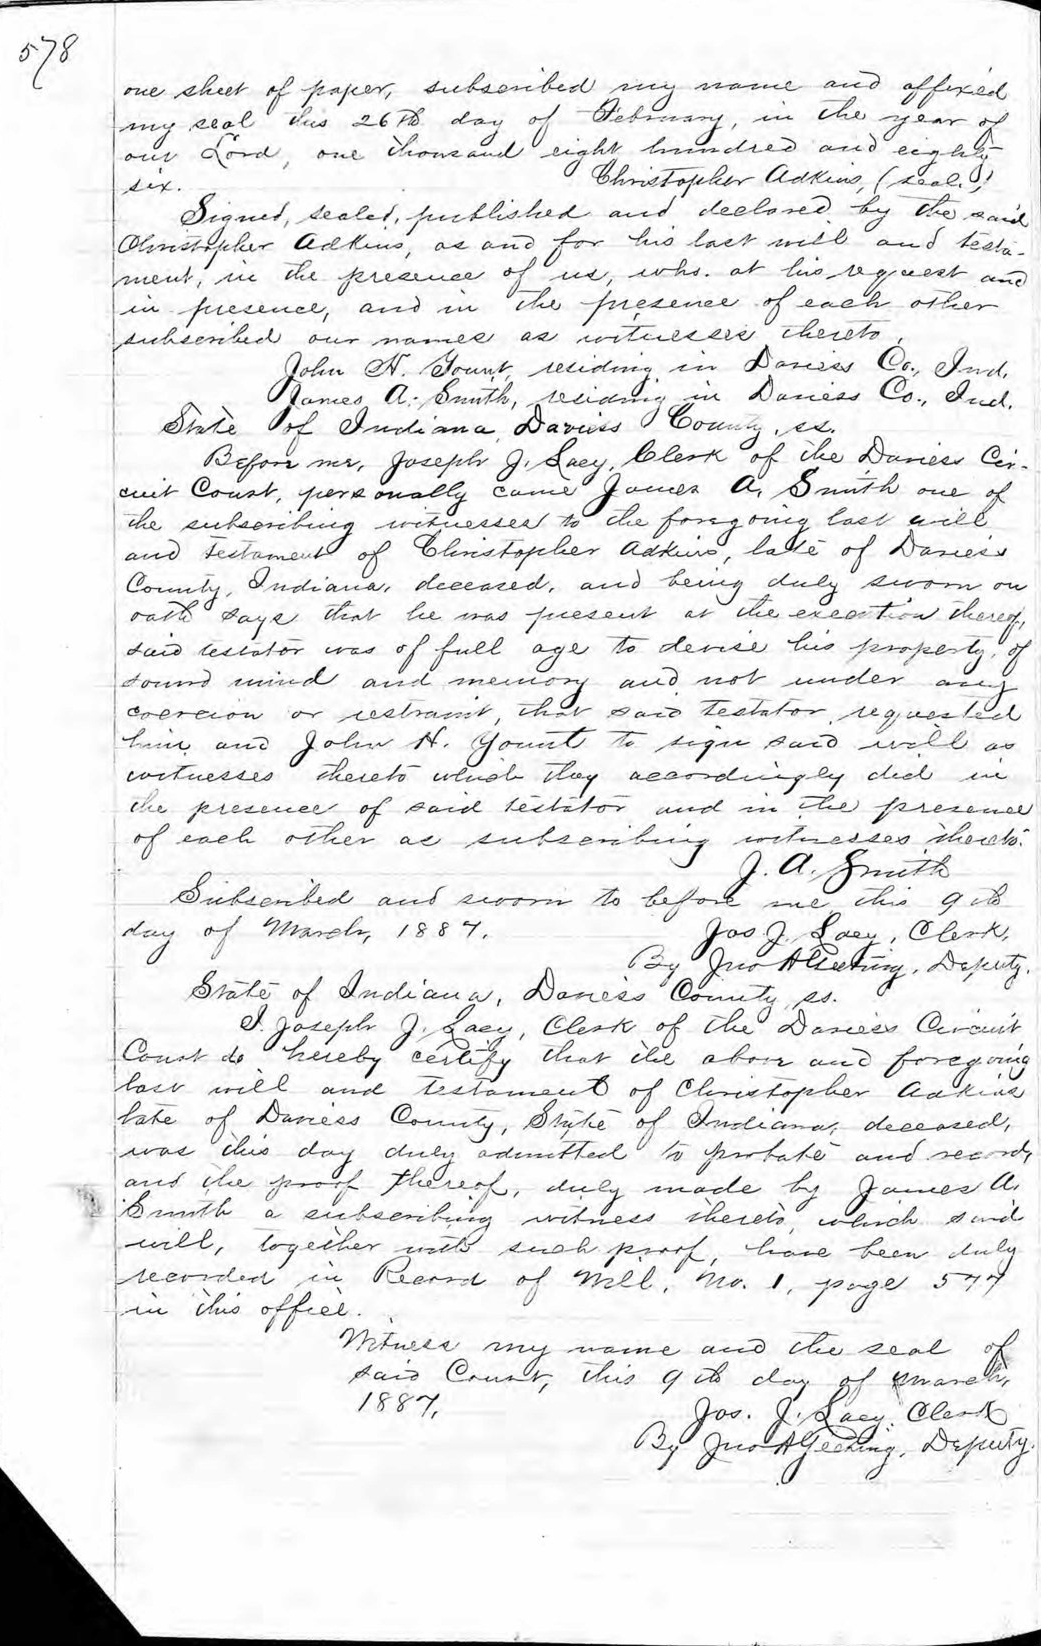 Last Will and Testament of Christopher Adkins (1825-1887) - page 2